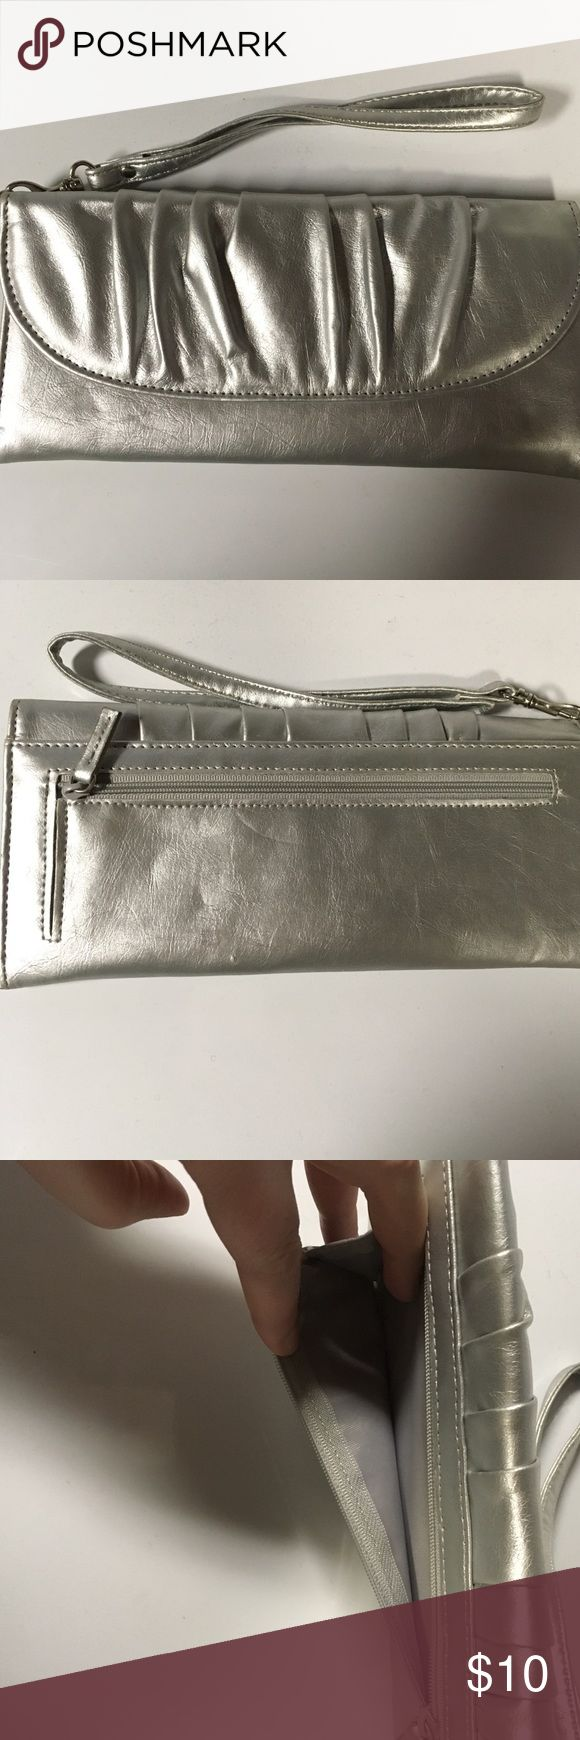 Silver clutch Rectangle silver clutch! Perfect for weddings, proms and formal occasion! Bags Clutches & Wristlets